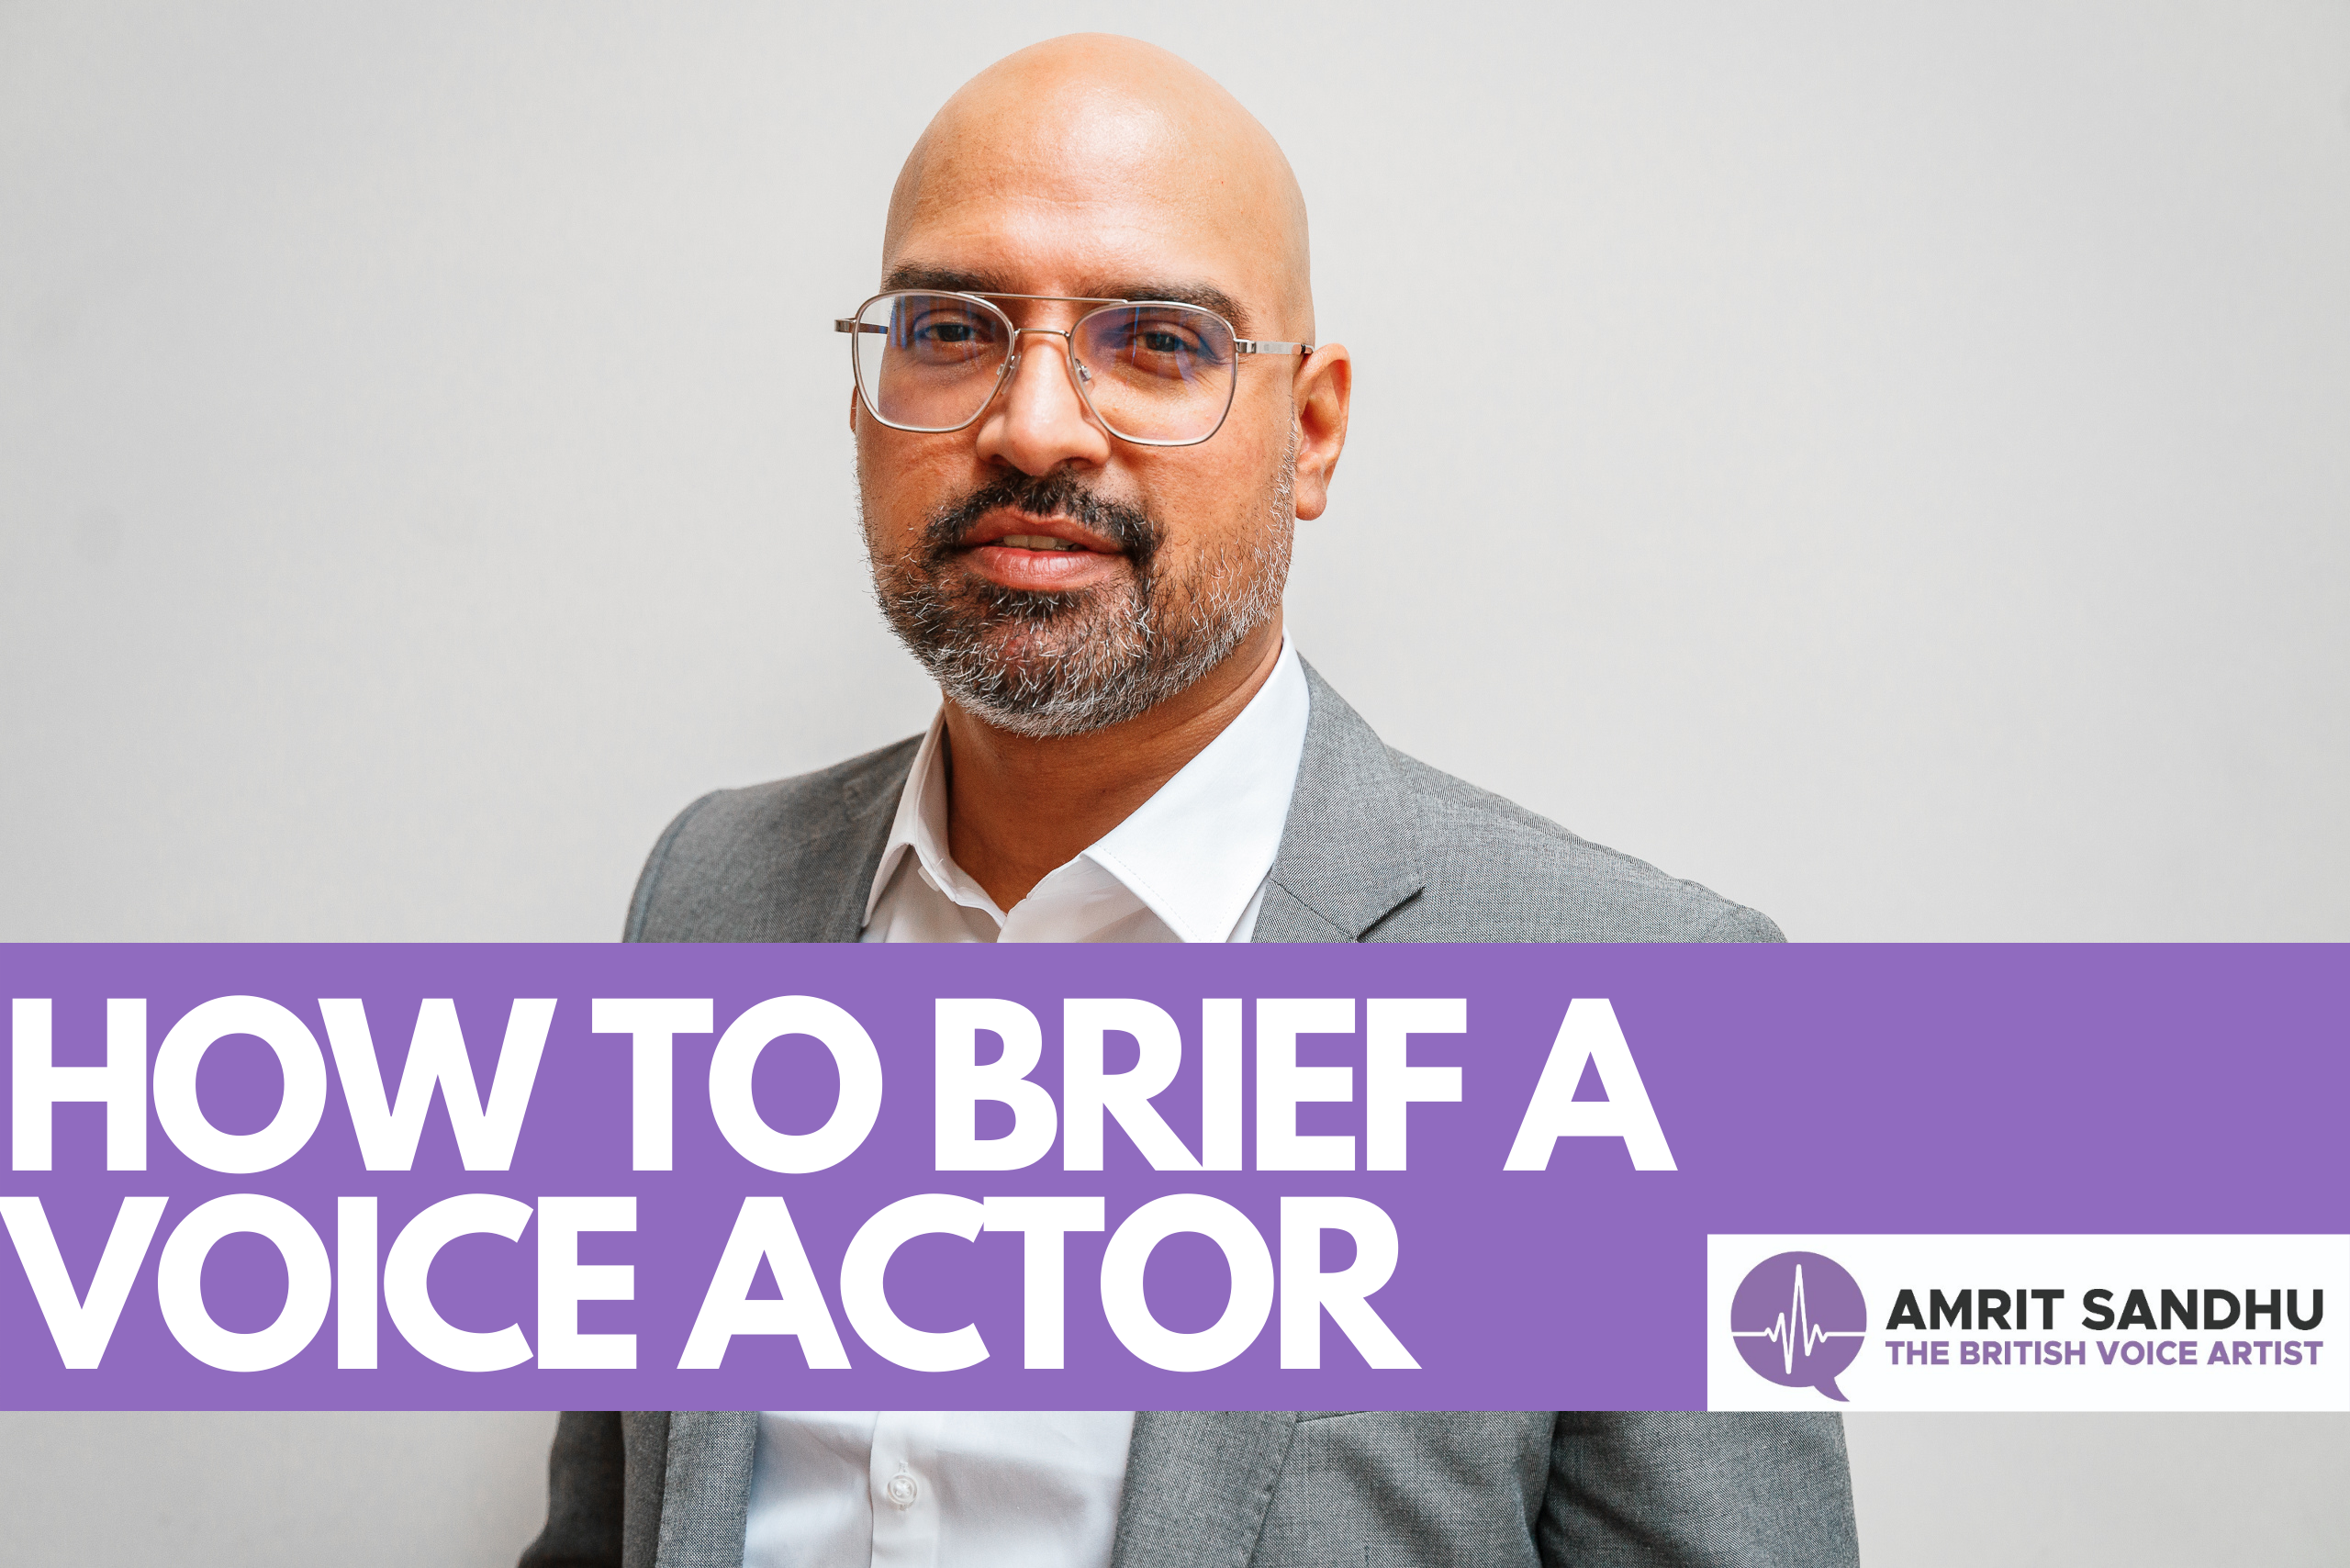 Briefing Your Voice Actor: What You Should Know